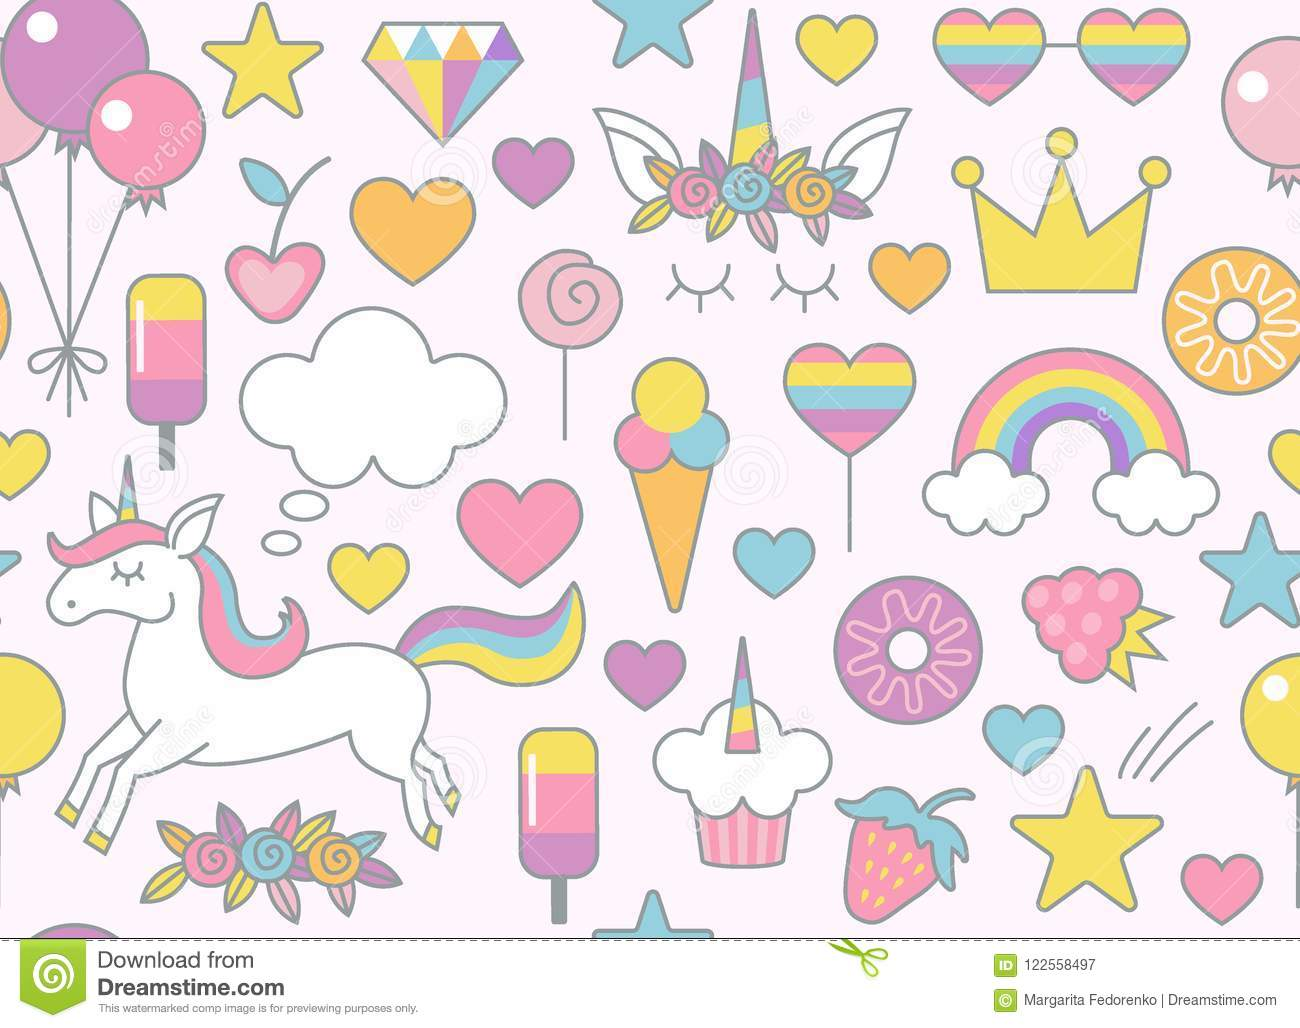 Unicorn rainbow sweets and other objects seamless pattern with light pink background